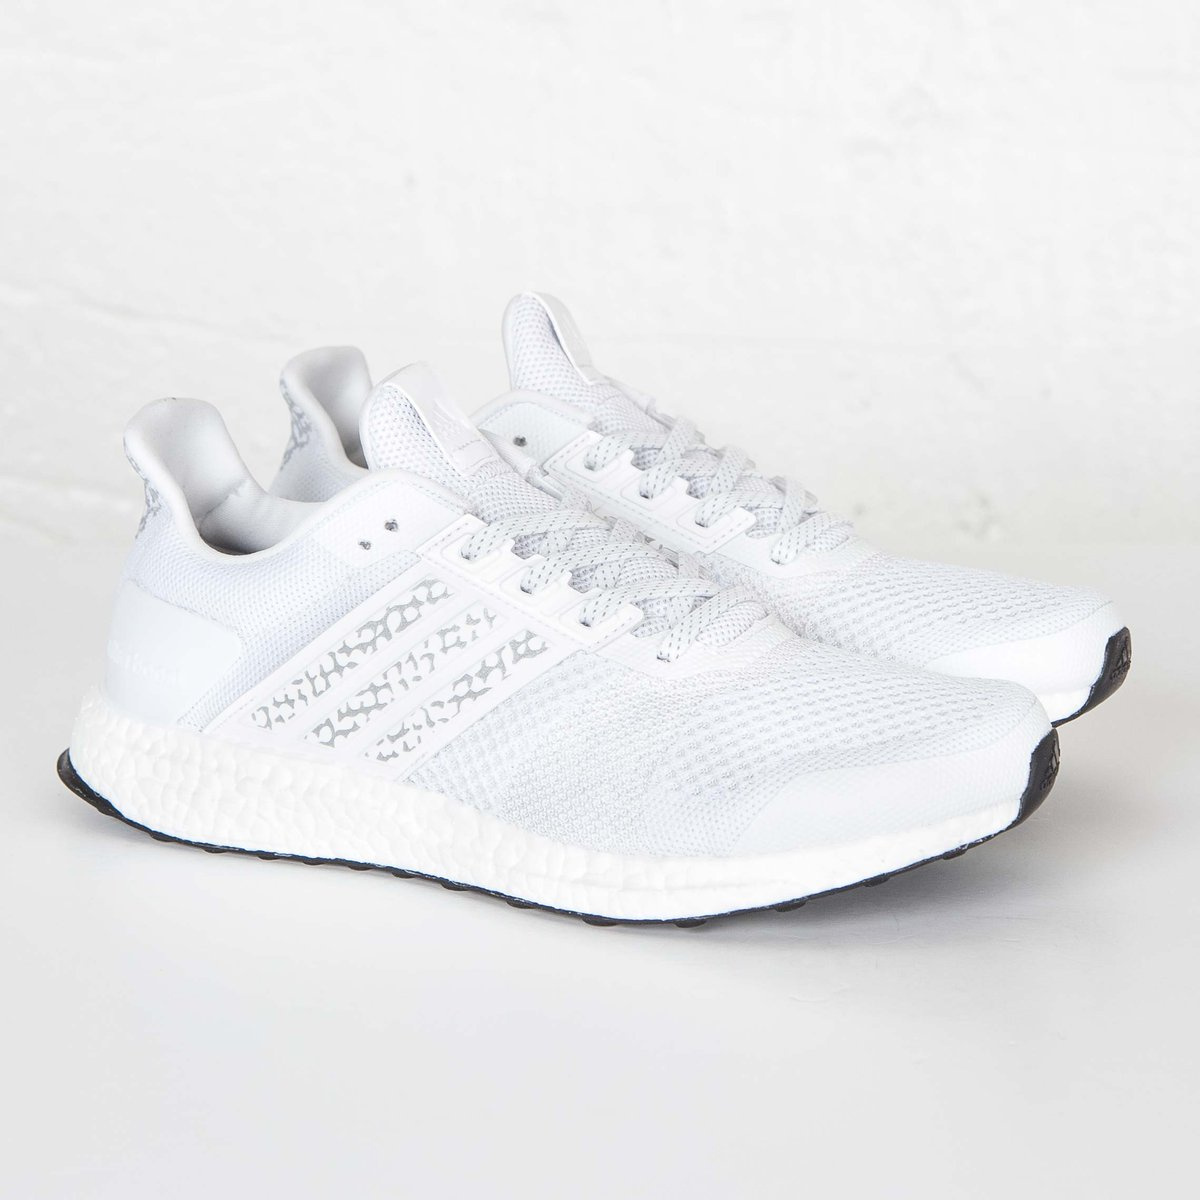 fb3ebc81a75b5 Adidas Ultra Boost White Ebay graaccountancy.co.uk